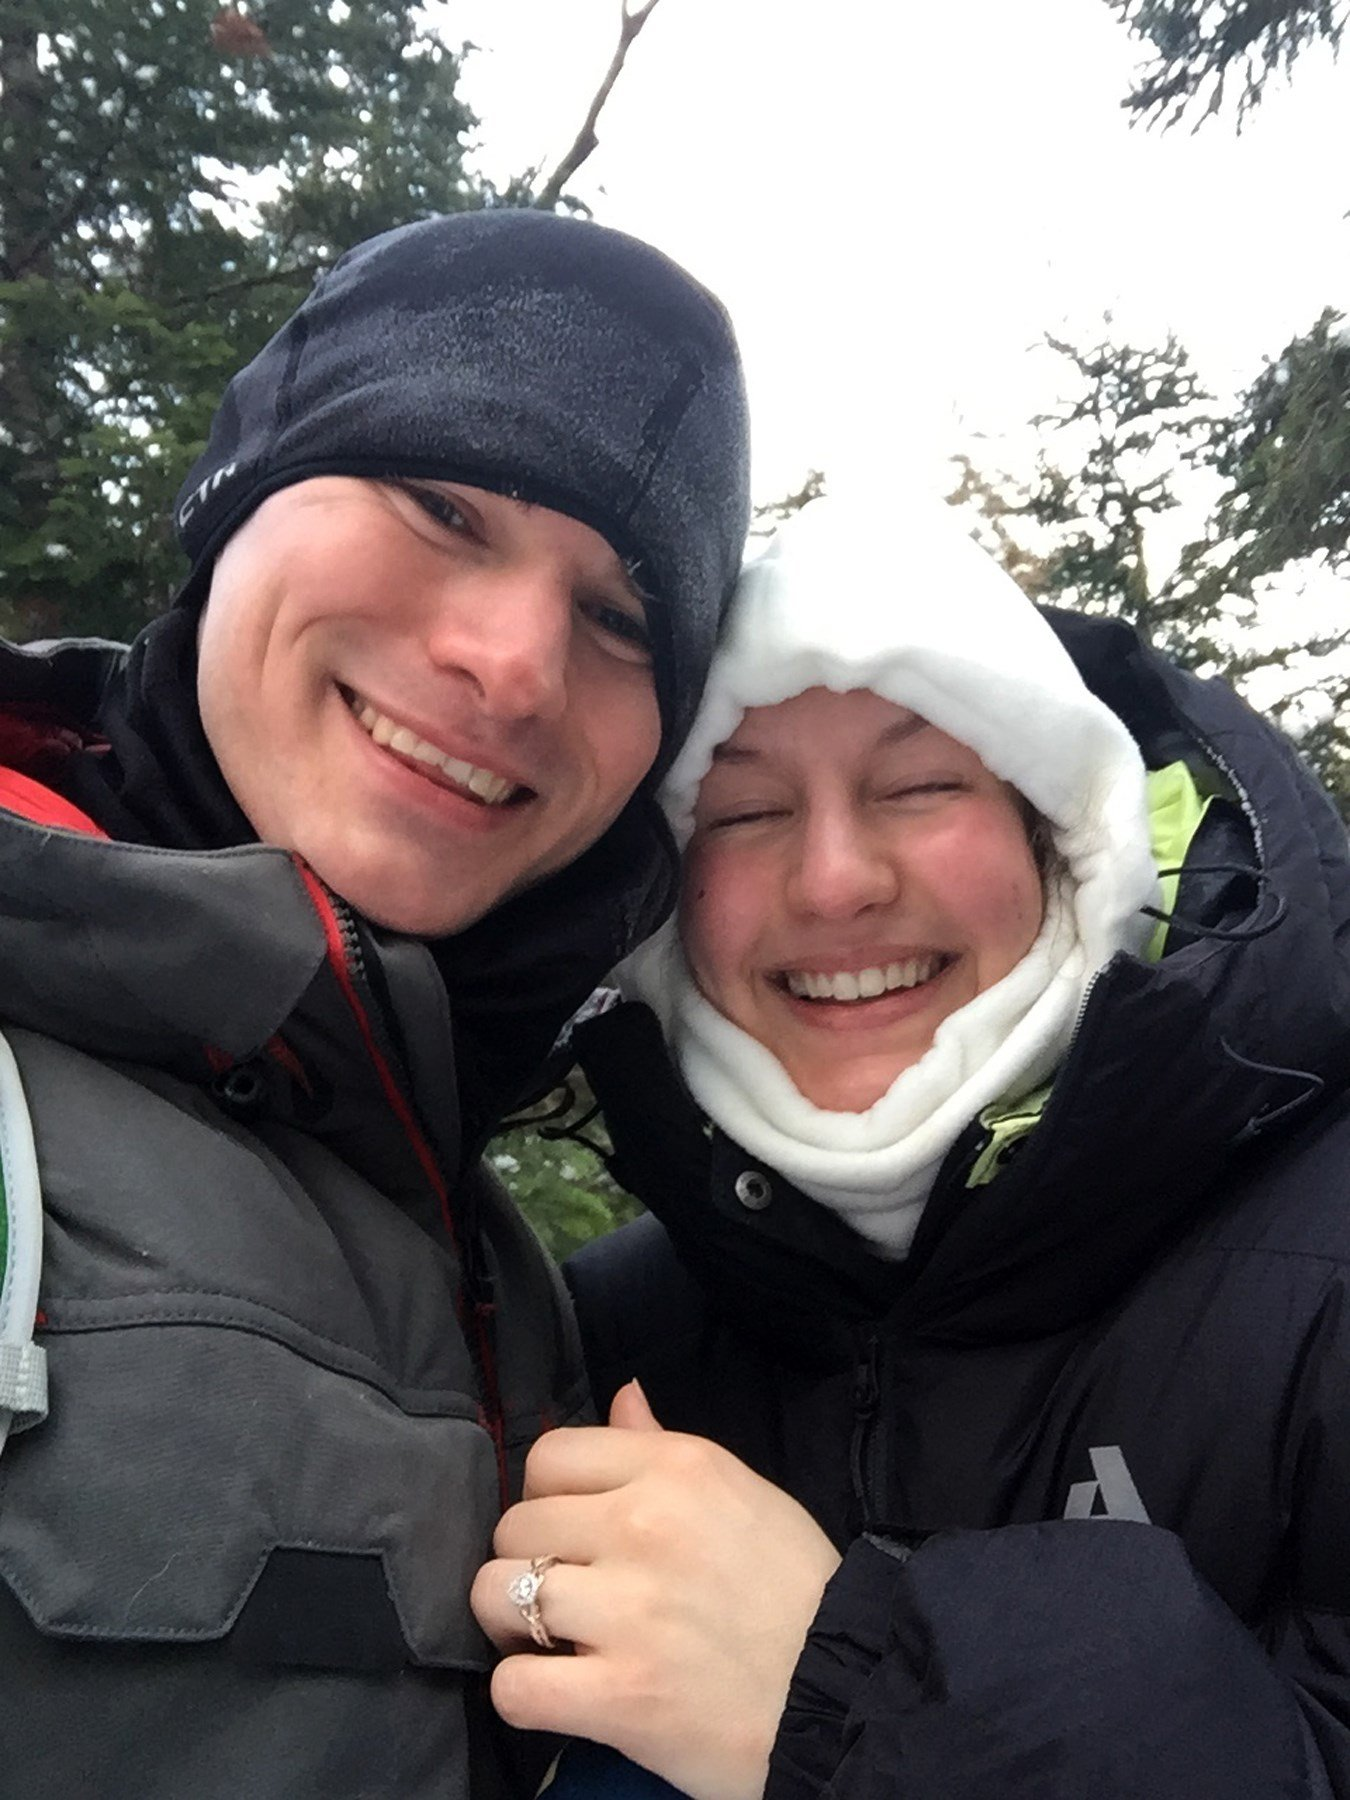 (AP Photo/Doug Darnell) Josh Darnell, of Londonderry, New Hampshire, proposed to Rachel Raske, of Lowell, Massachusetts, on Thursday, Dec. 28, 2017, in Tuckerman's Ravine, New Hampshire, on the same day the temperature dropped to minus-34...